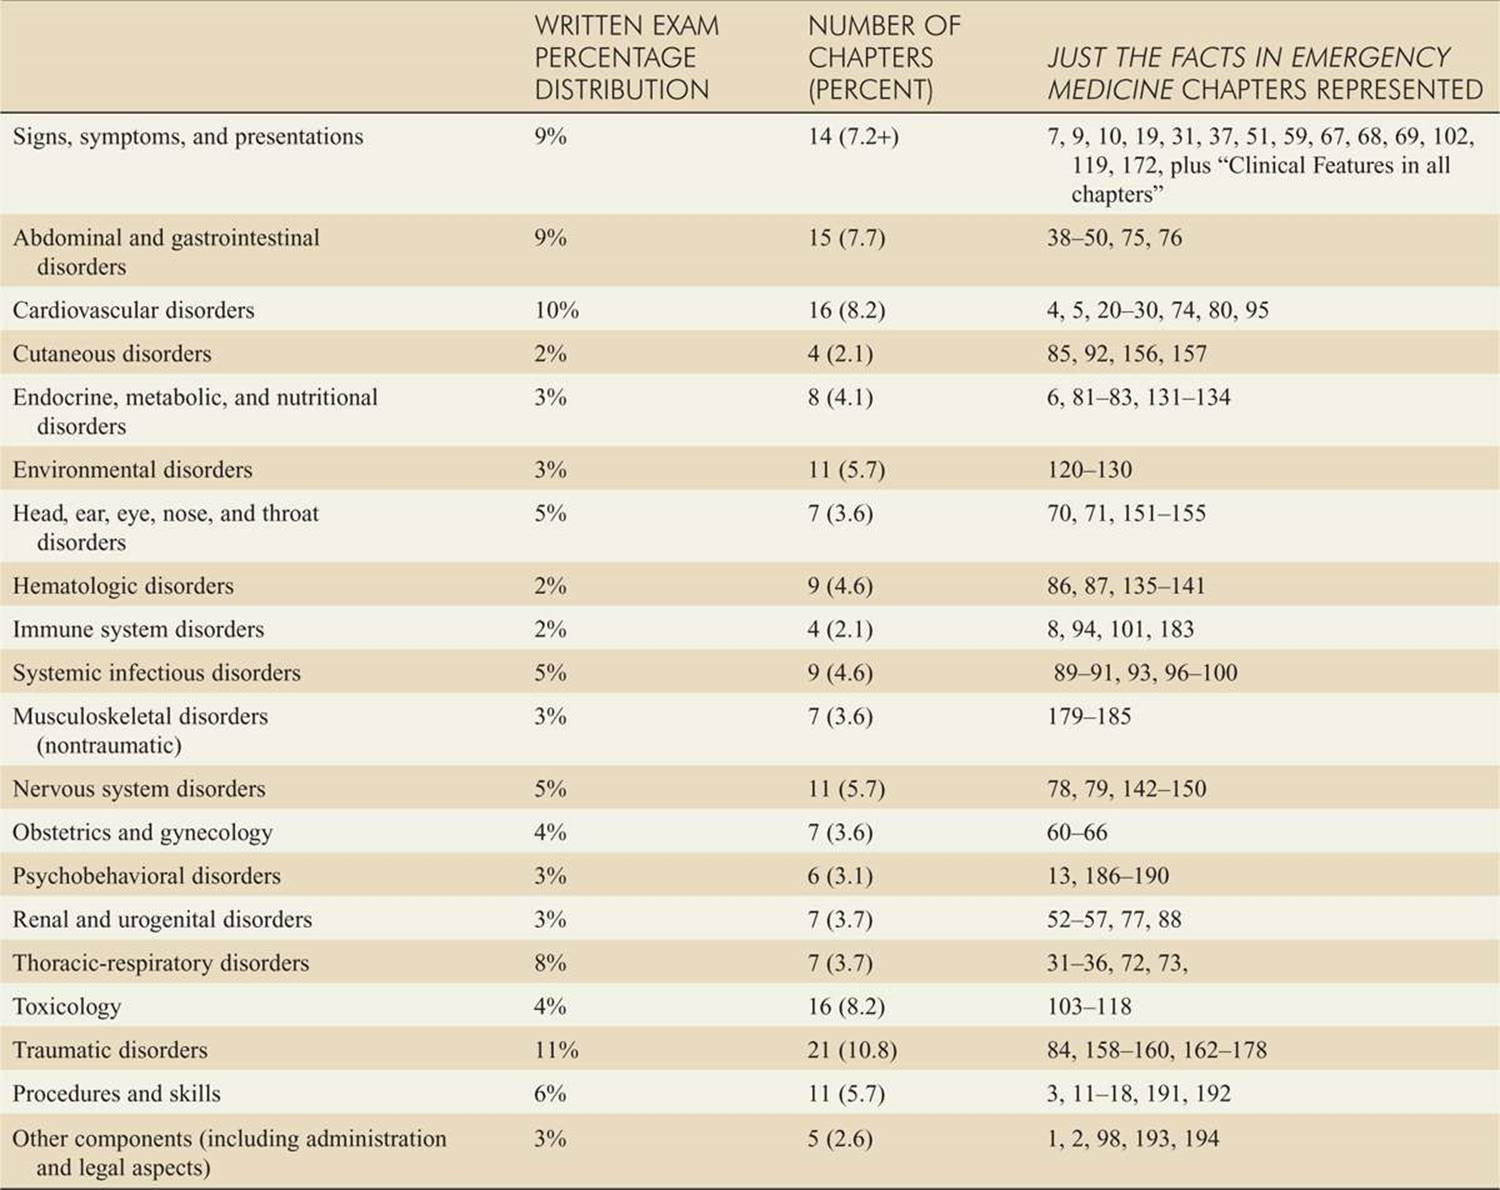 FACTS ABOUT EMERGENCY MEDICINE BOARD EXAMS - TEST